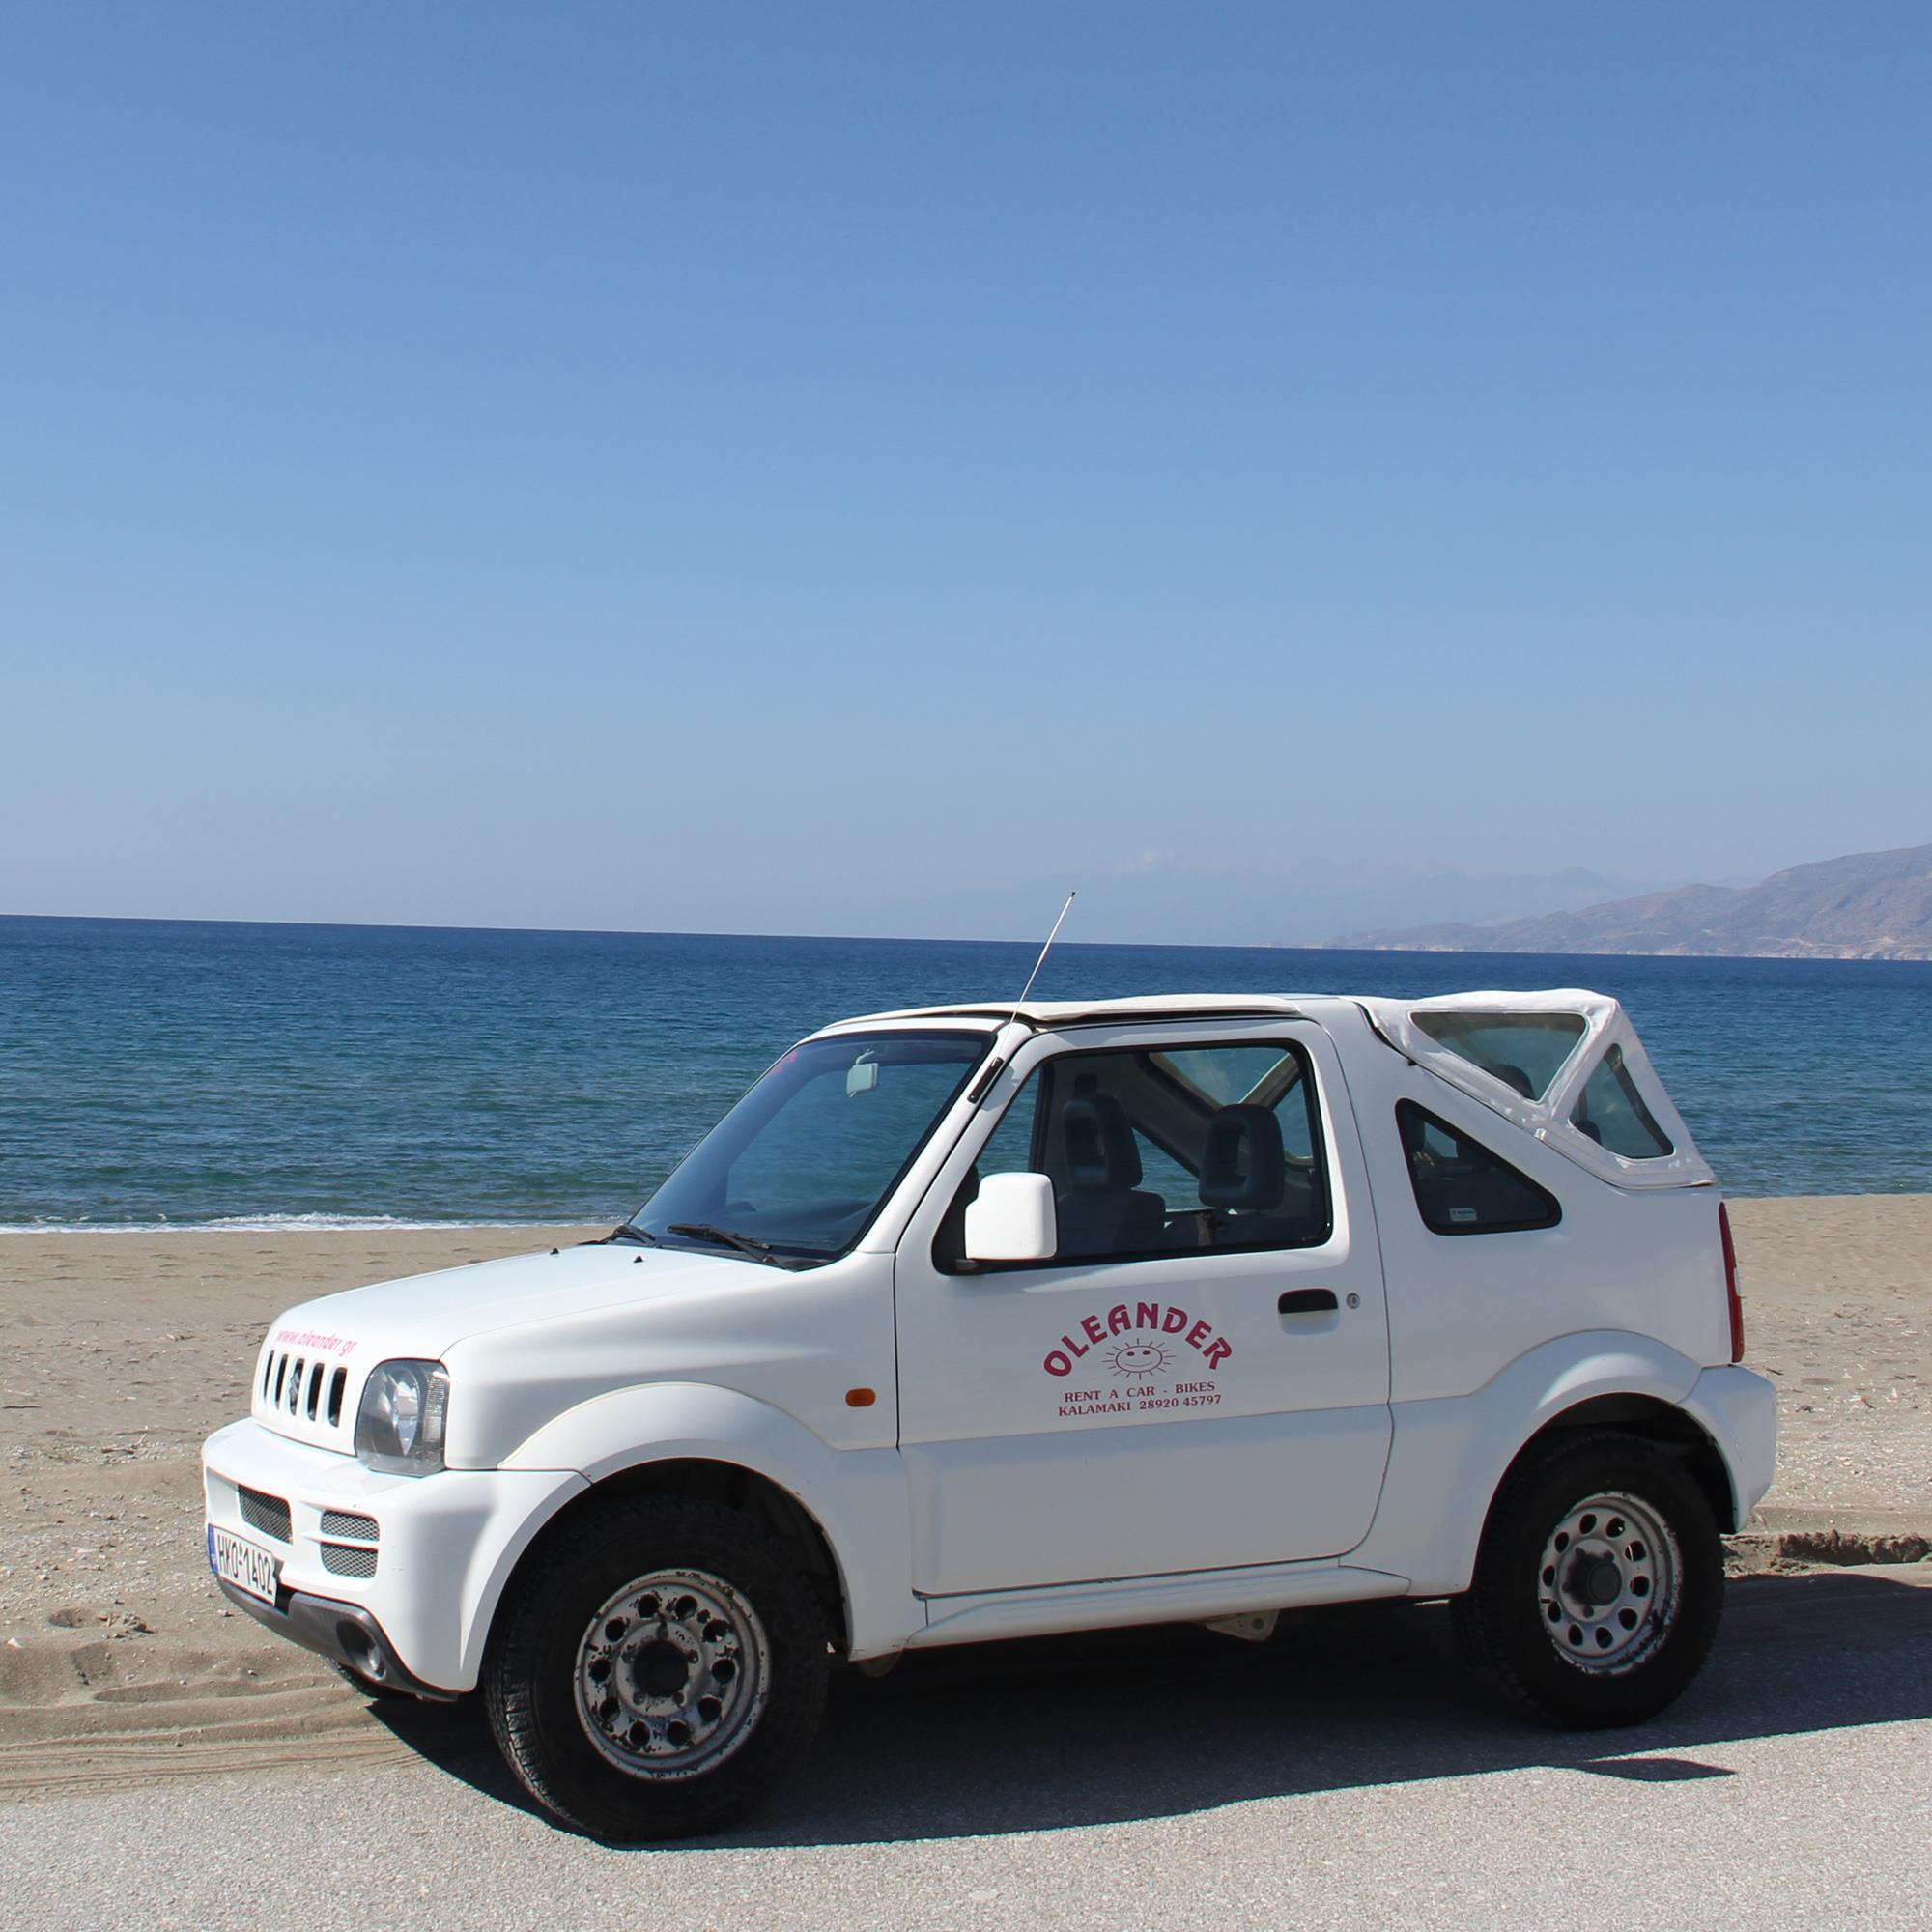 Category G1 - Suzuki Jimny 4x4